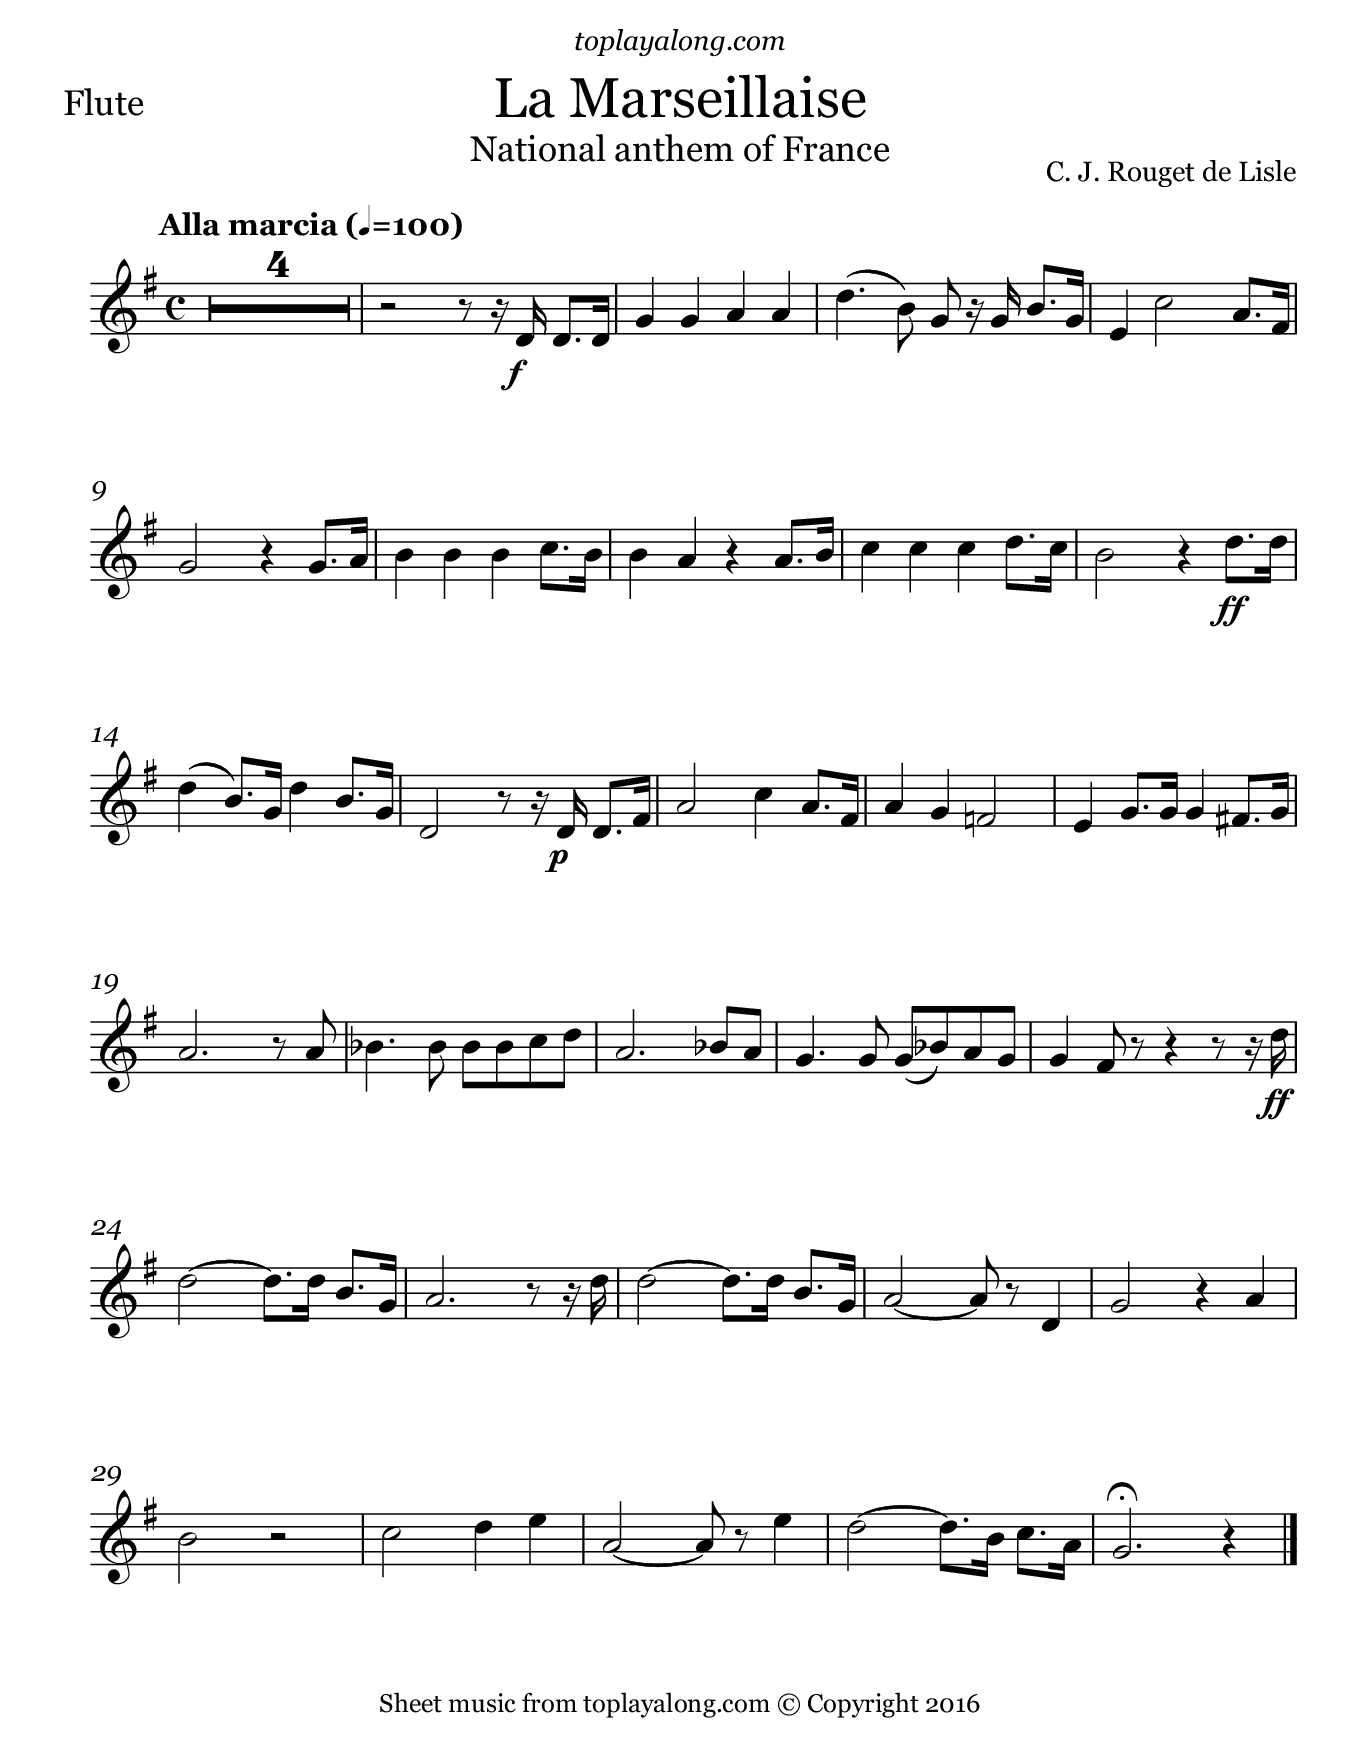 National Anthem of France (La Marseillaise). Sheet music for Flute, page 1.